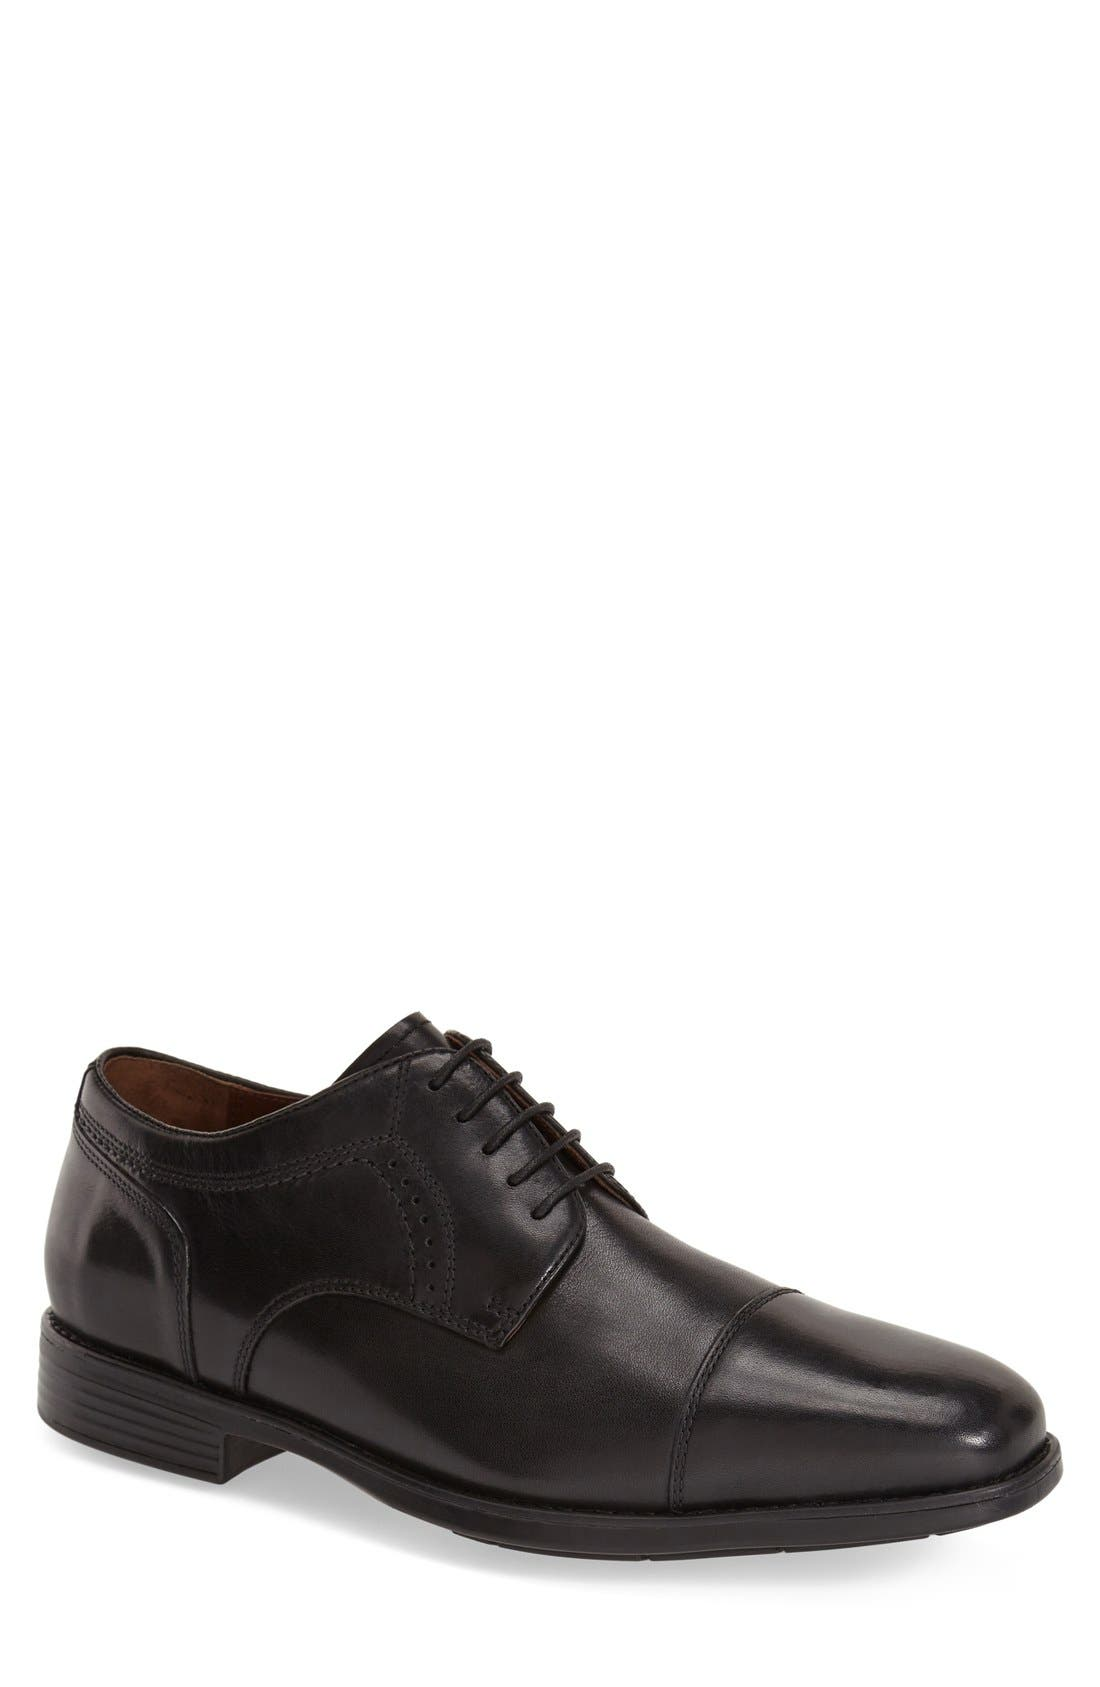 JOHNSTON & MURPHY, 'Branning' Waterproof Cap Toe Derby, Main thumbnail 1, color, BLACK